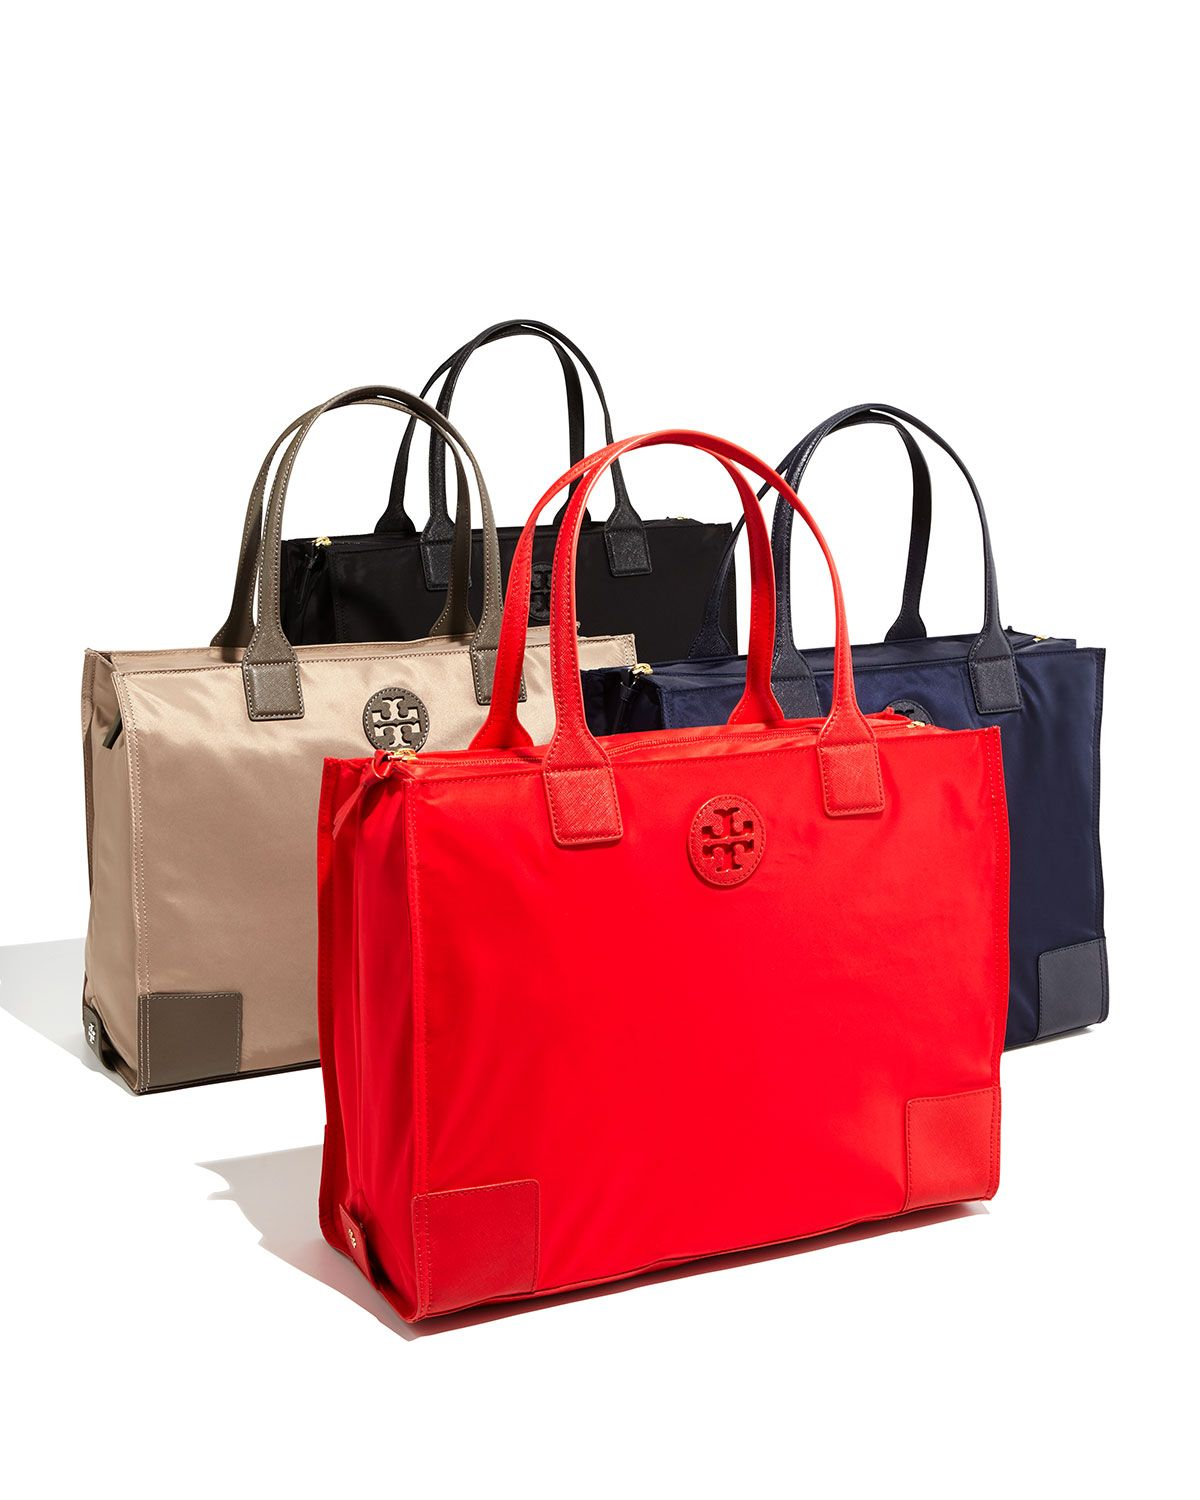 2f0ad2e9b76a Tory Burch Ella Packable Nylon Tote Bag